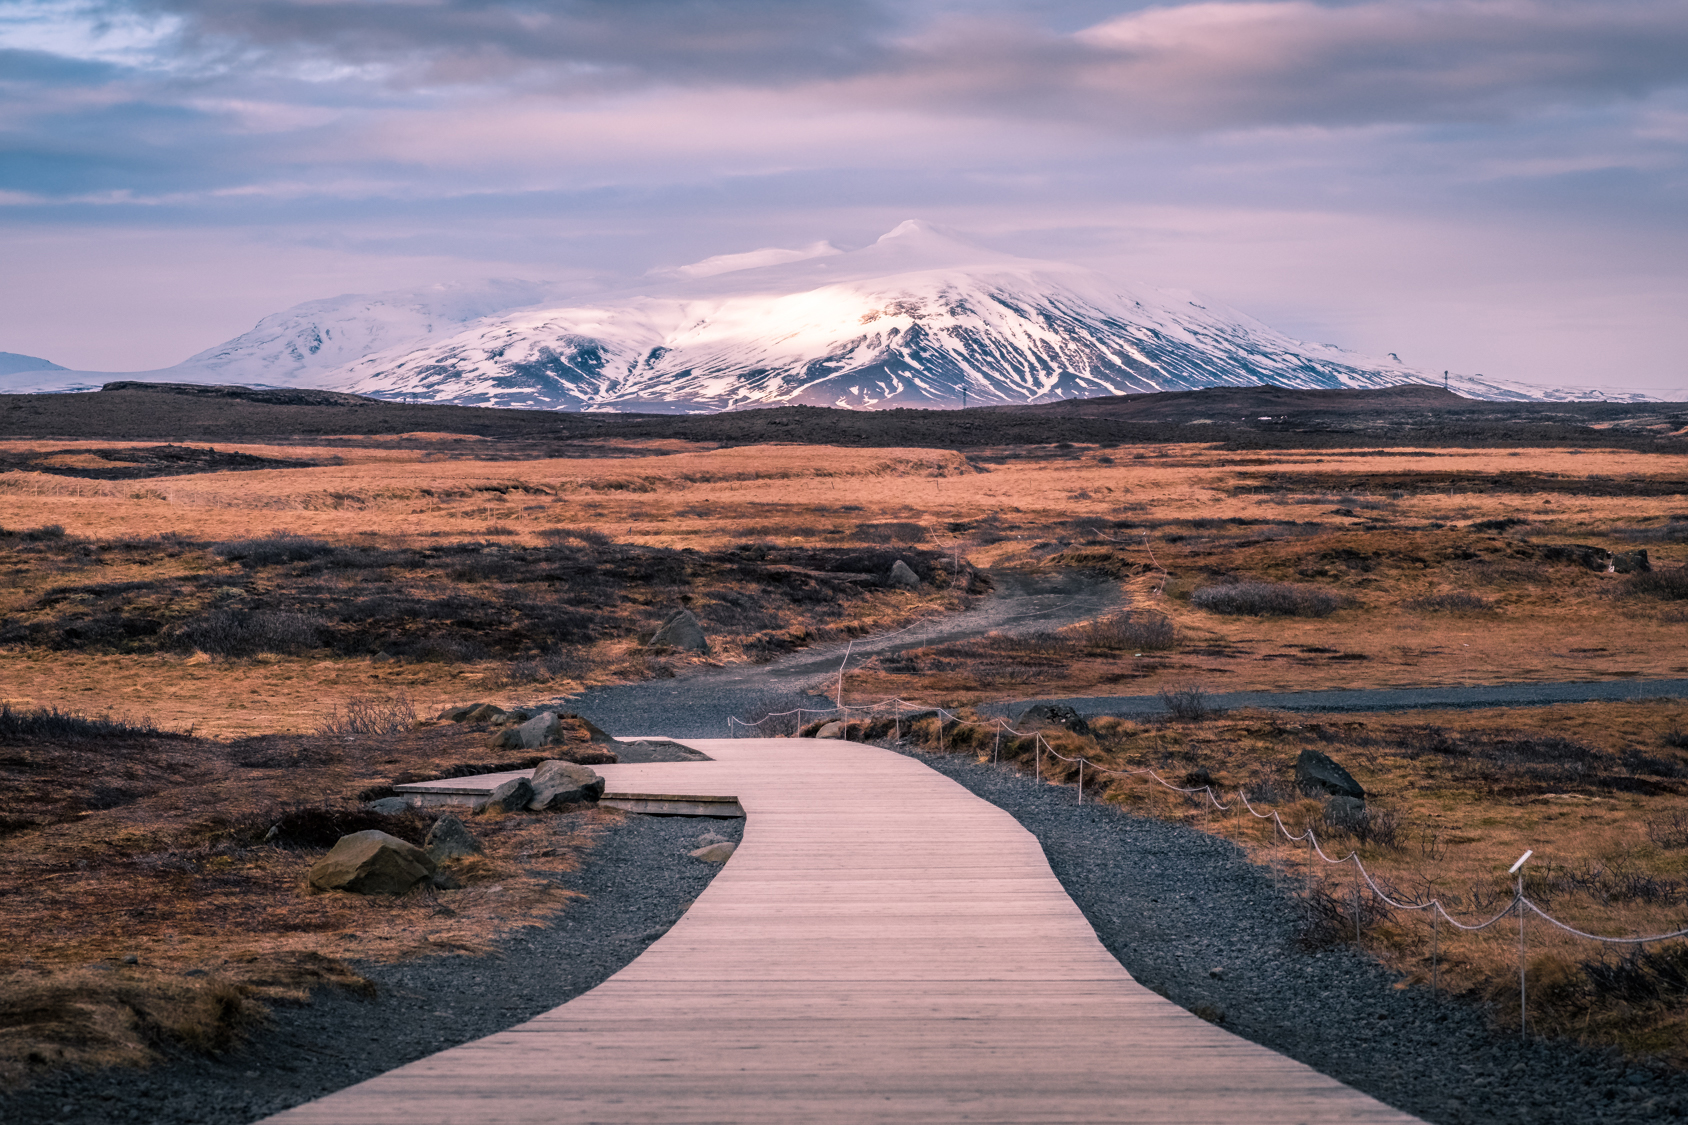 path toward snow-capped mountain